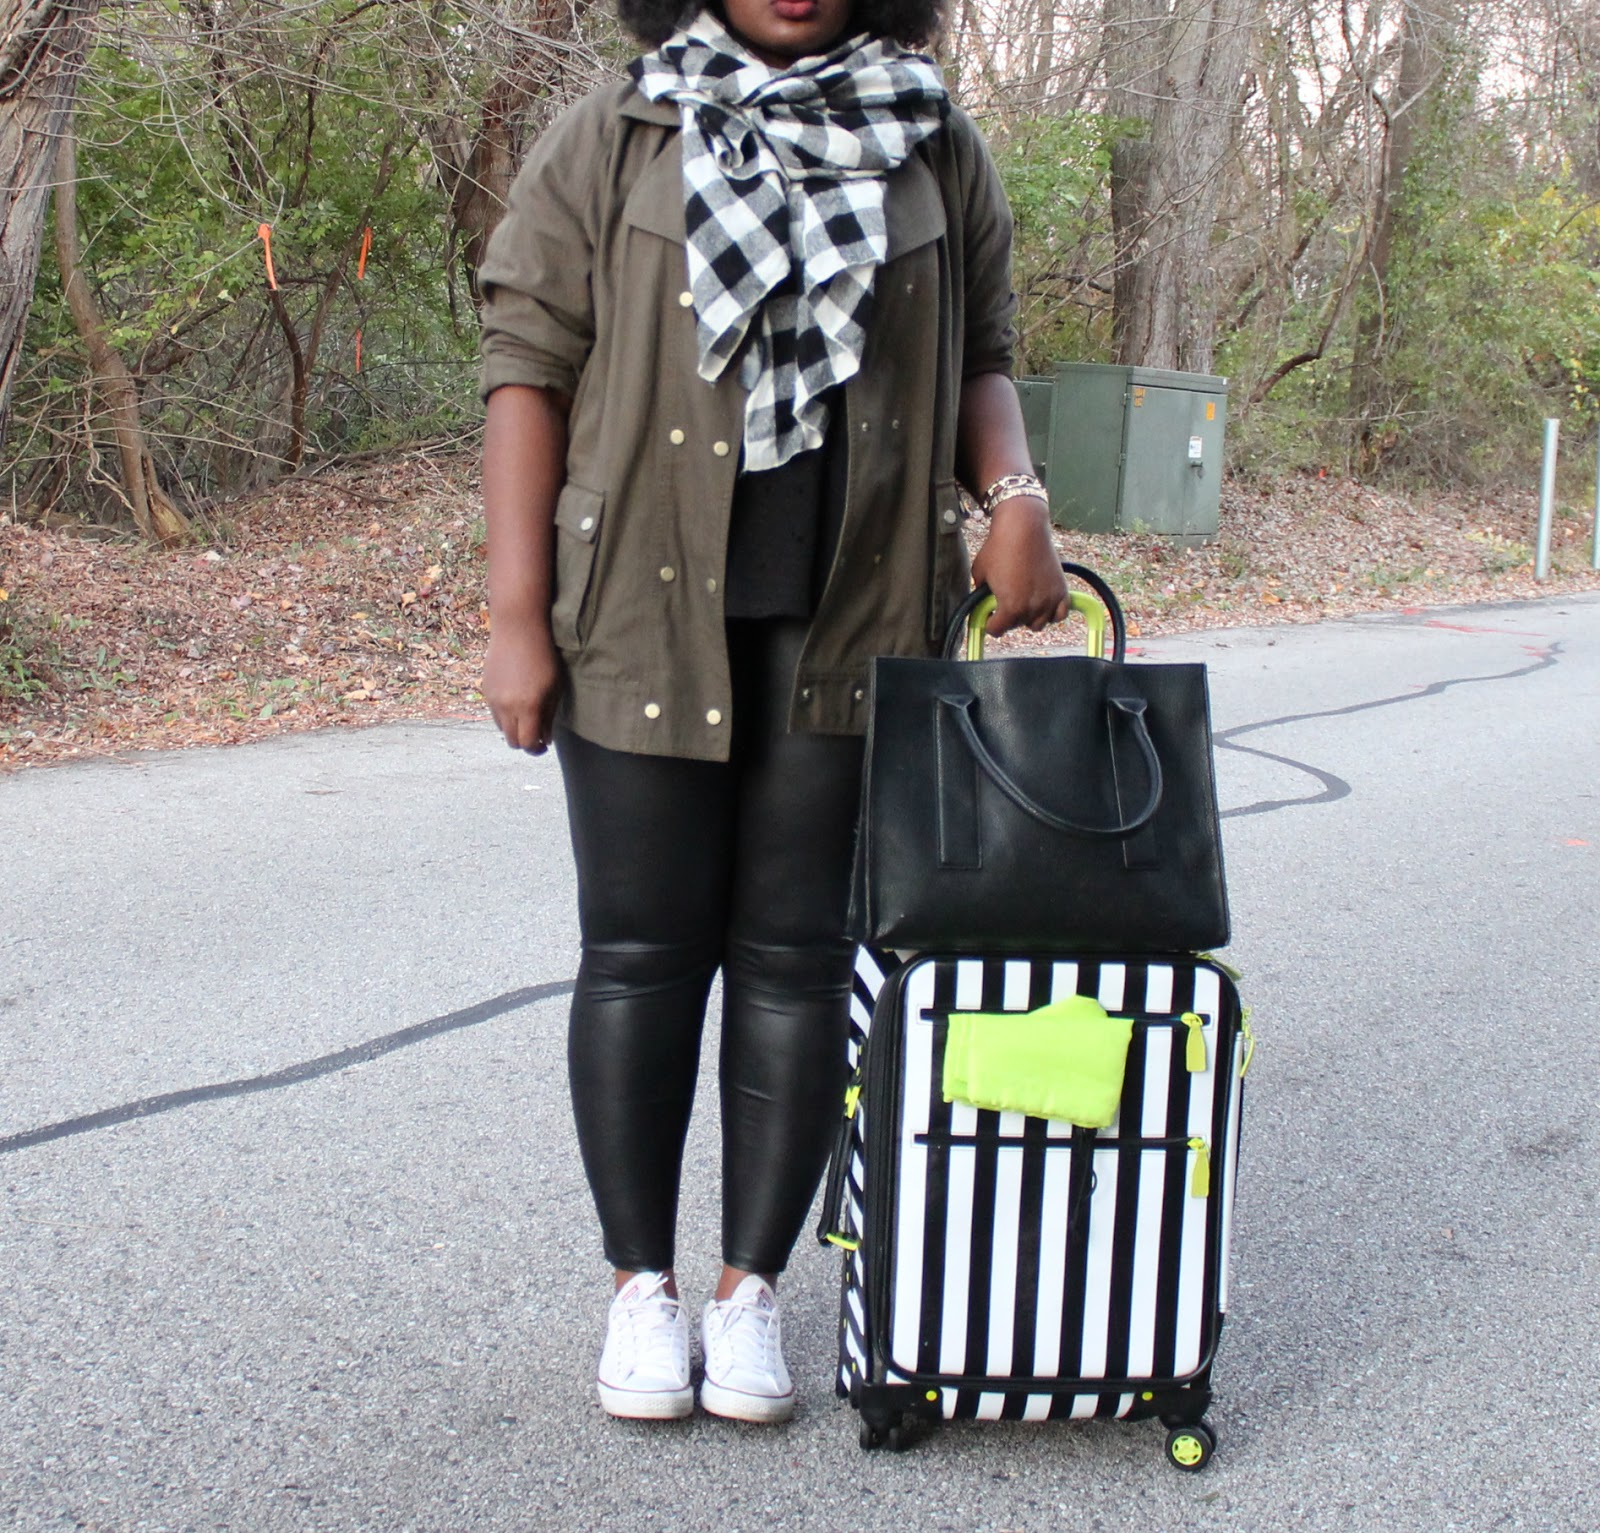 plu-size-travel-outfit-forever21-distressed tee-faux-leather-leggings-white-chuck-taylor